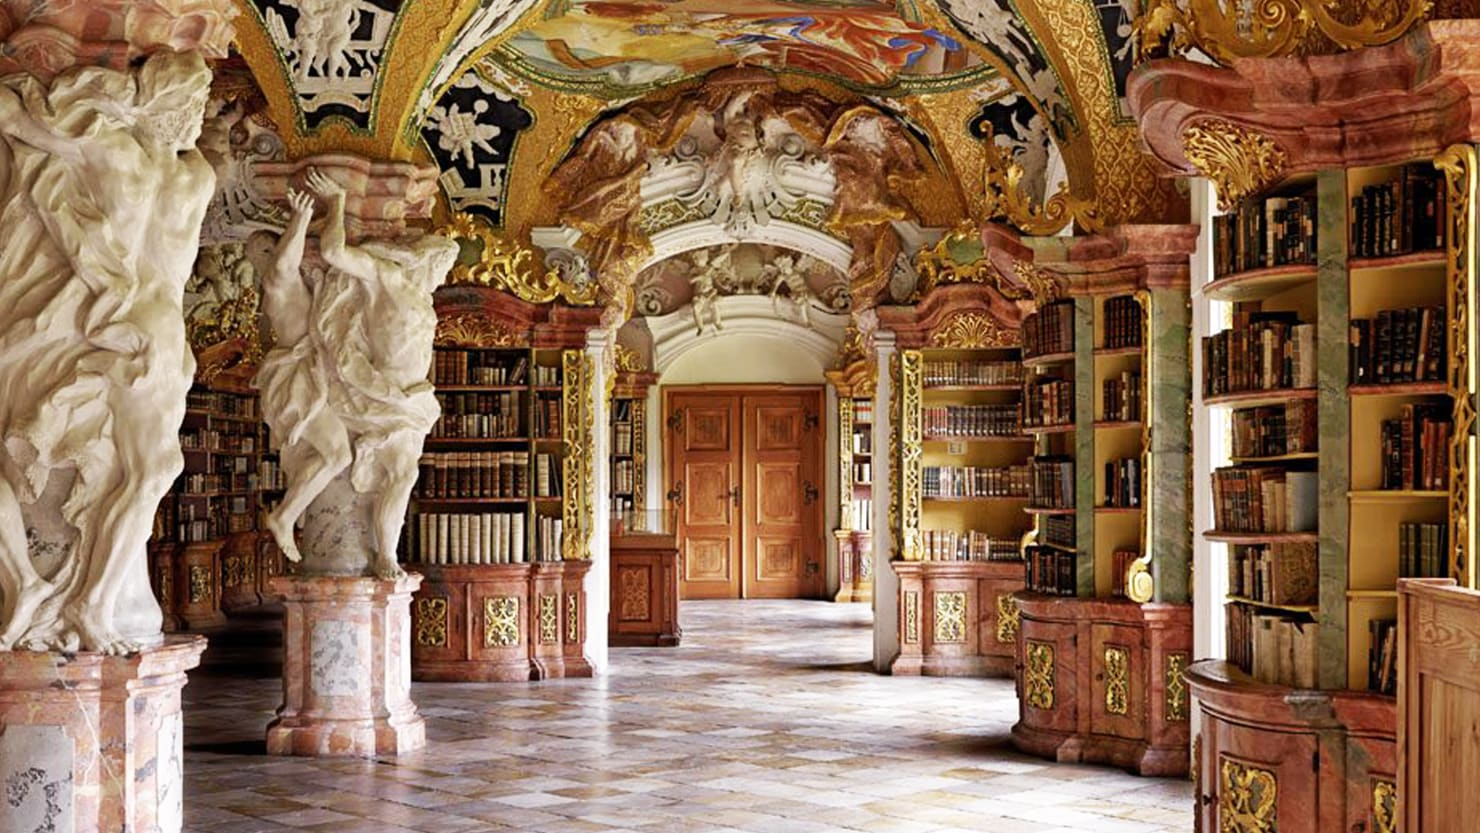 Travel to Palatial Libraries Around the World